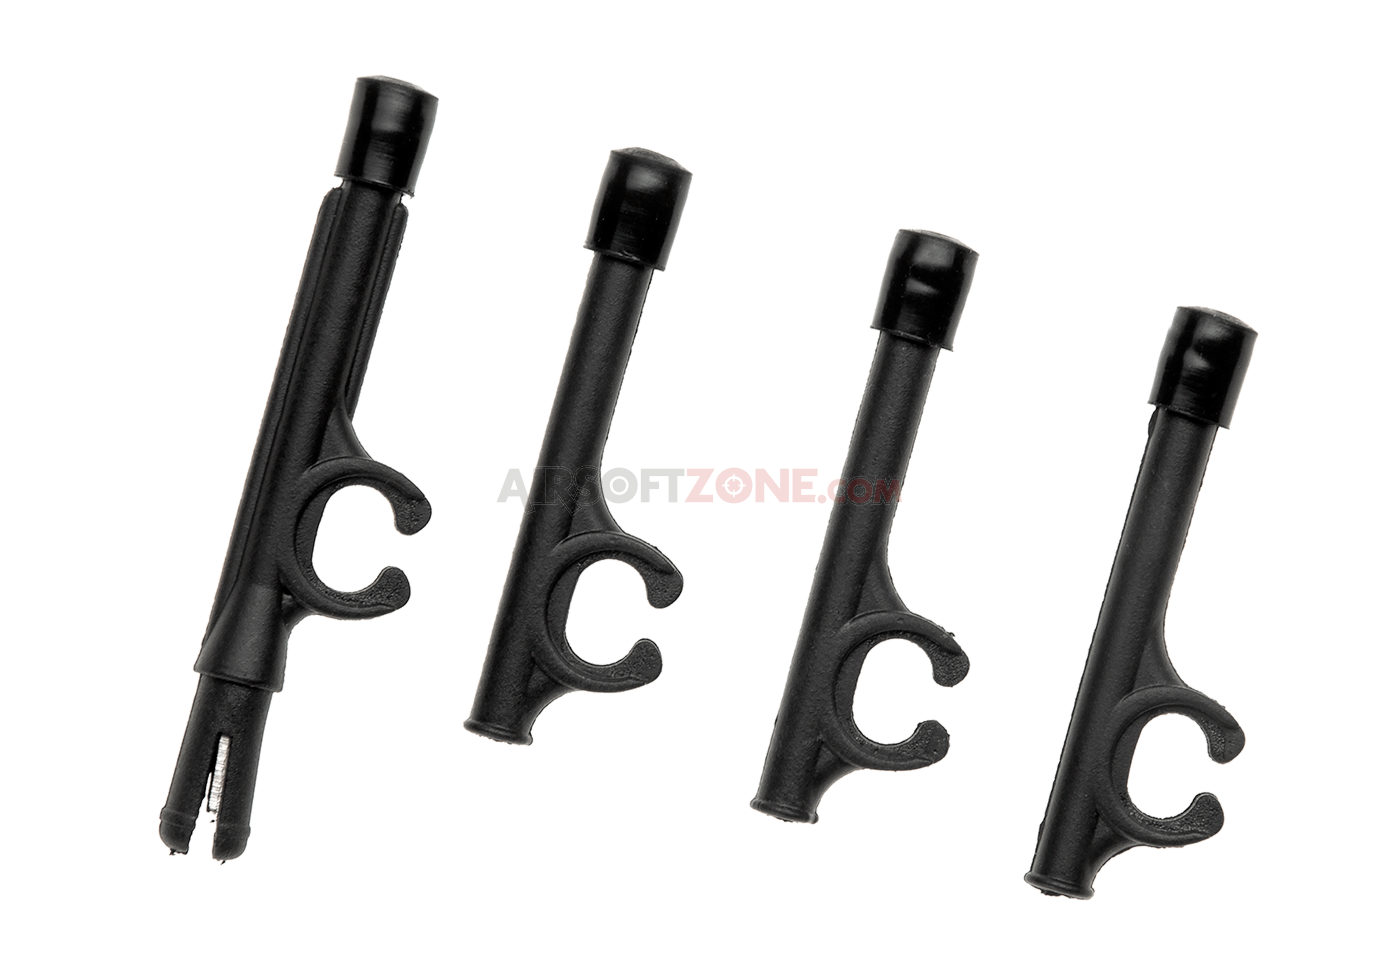 Comtac Headset Replacement Part Black Z Tactical